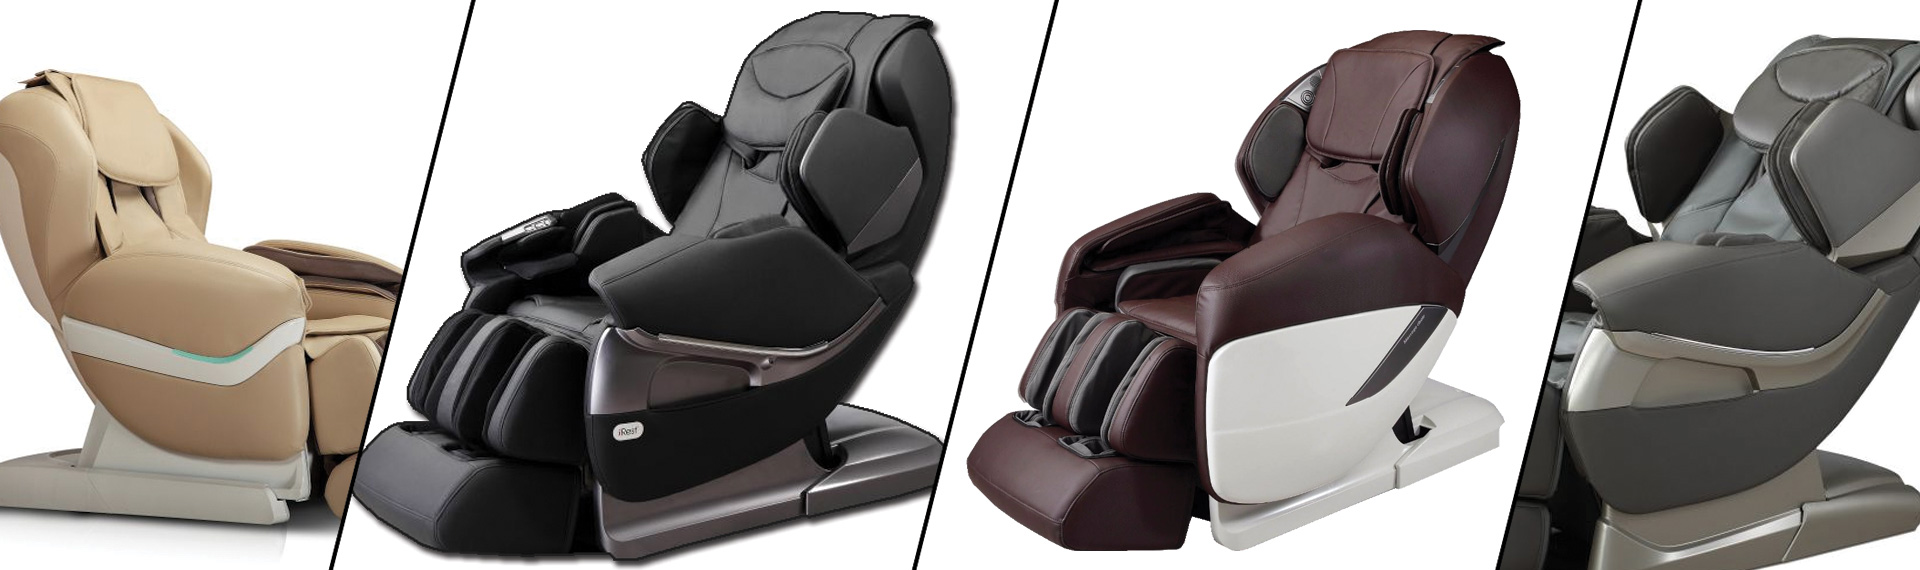 Cloud 9 Massage Chairs